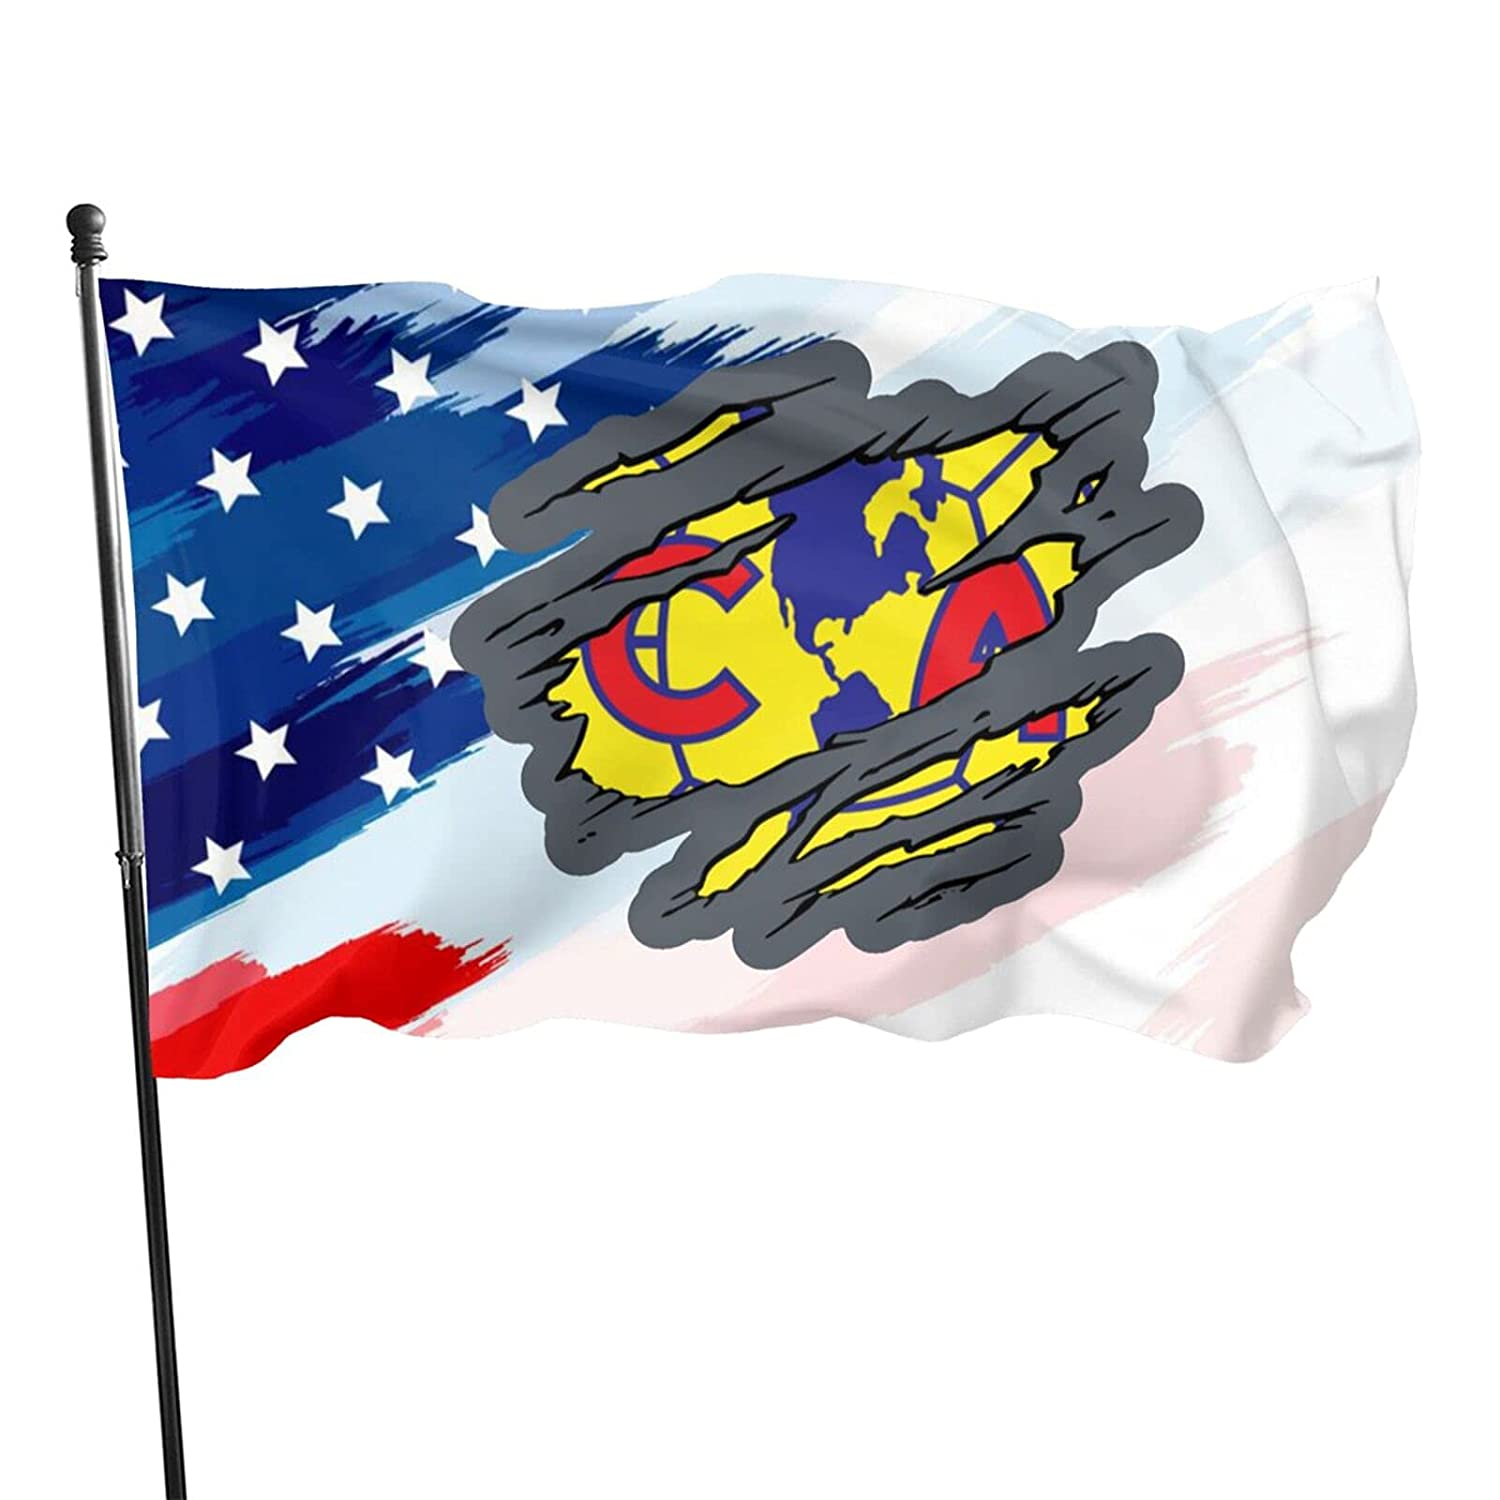 Torn Club America Flags 3x5 Ft Home Flag Tough Durable, It Can Be Used For Outdoor Or Interior Decoration